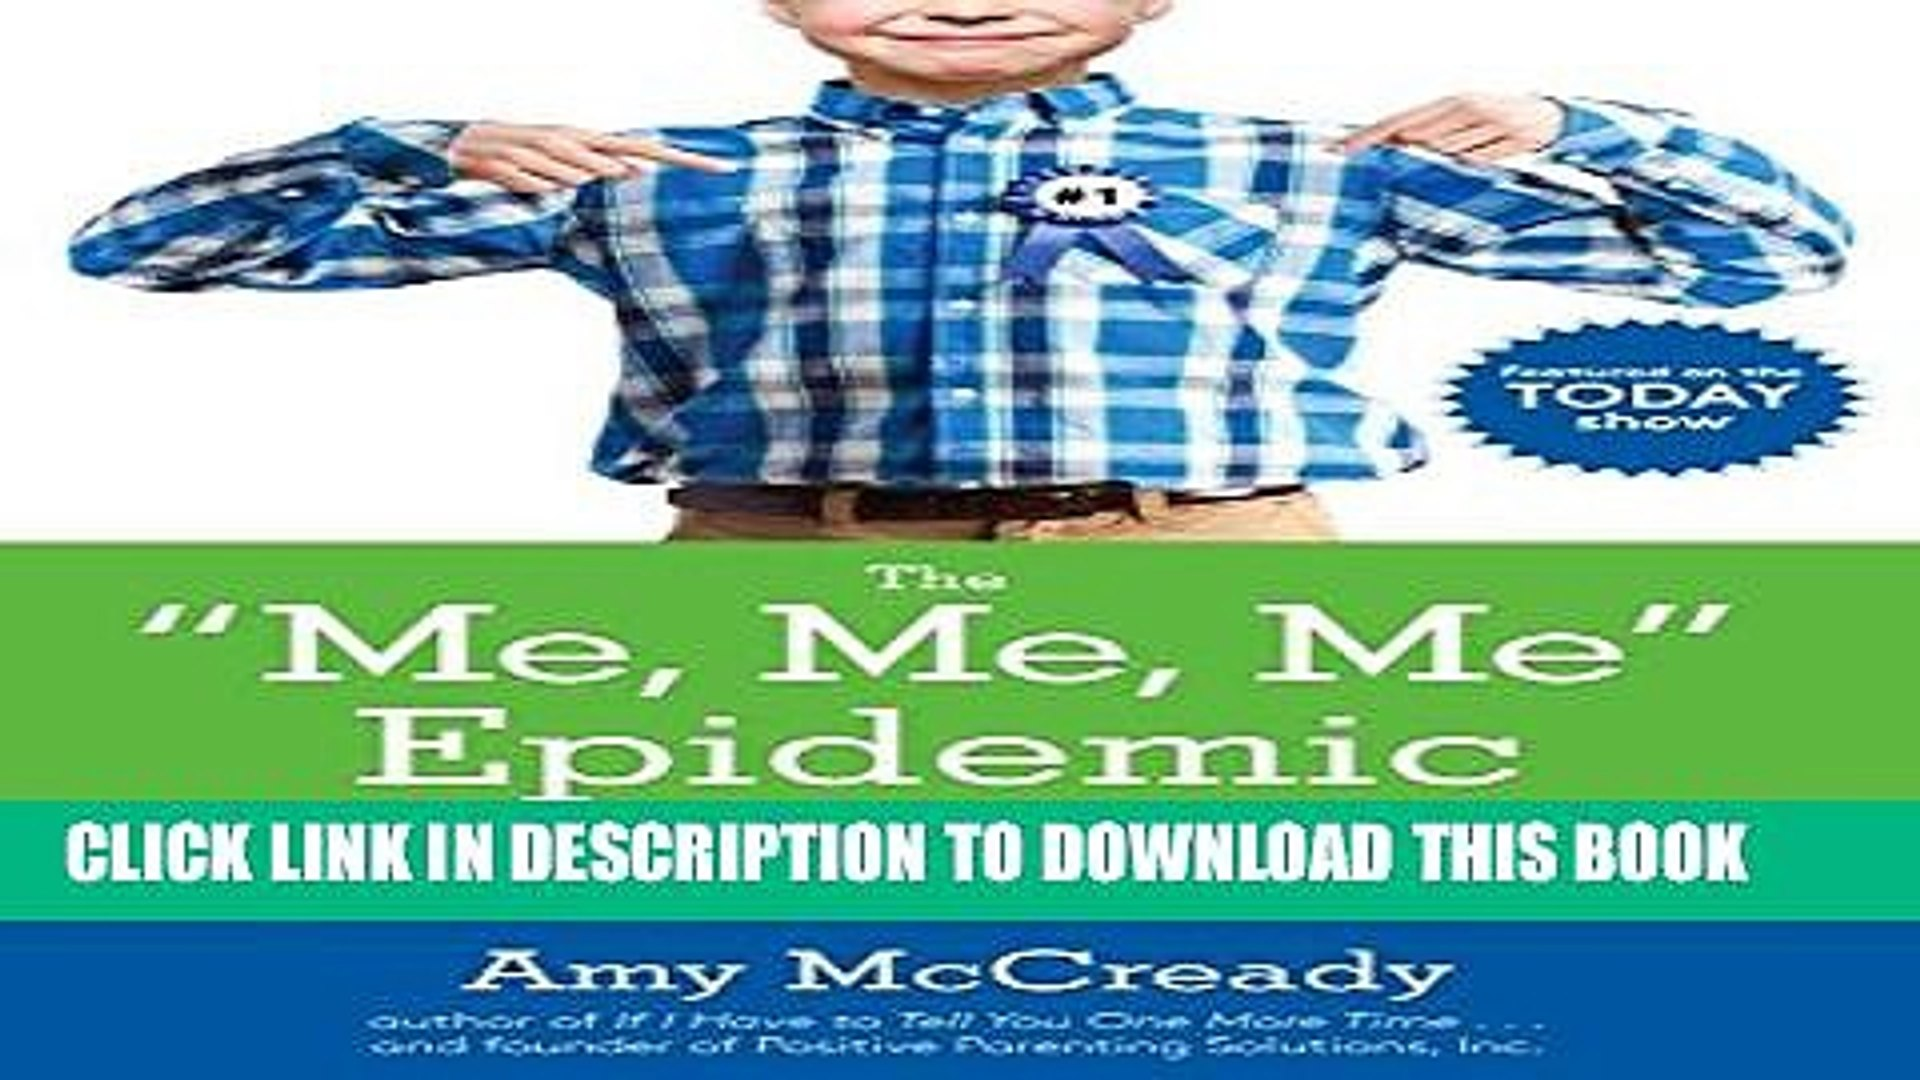 [PDF] The Me, Me, Me Epidemic: A Step-by-Step Guide to Raising Capable, Grateful Kids in an